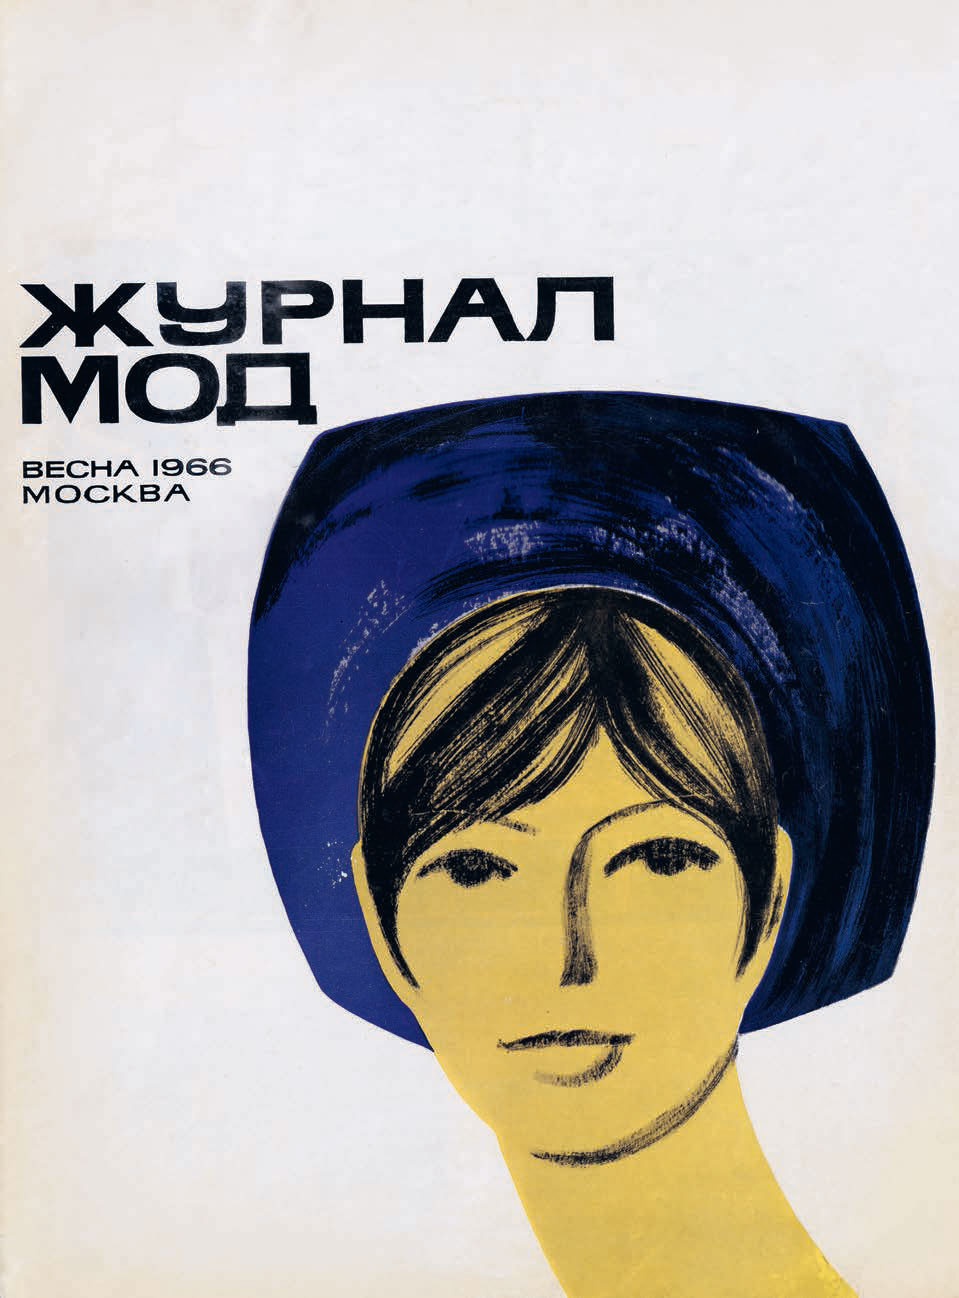 Modeli Odezhdi (Models of Clothing) magazine, 1968. As reproduced in Designed in the USSR